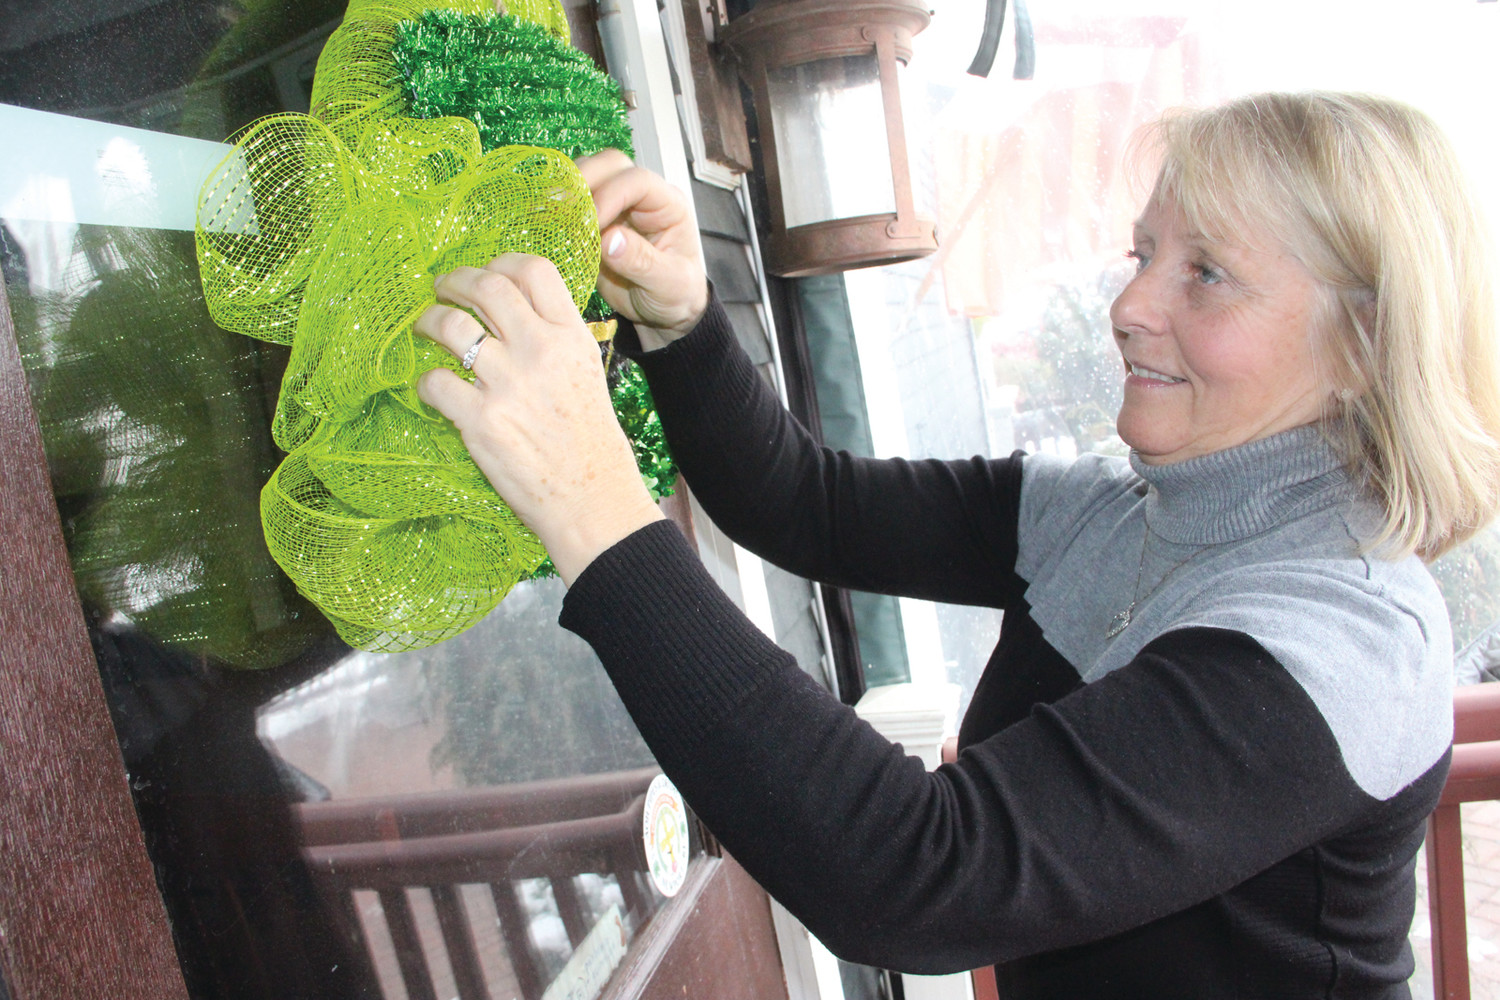 Laurie O'Rourke prepares for the St. Patrick's Day celebration.